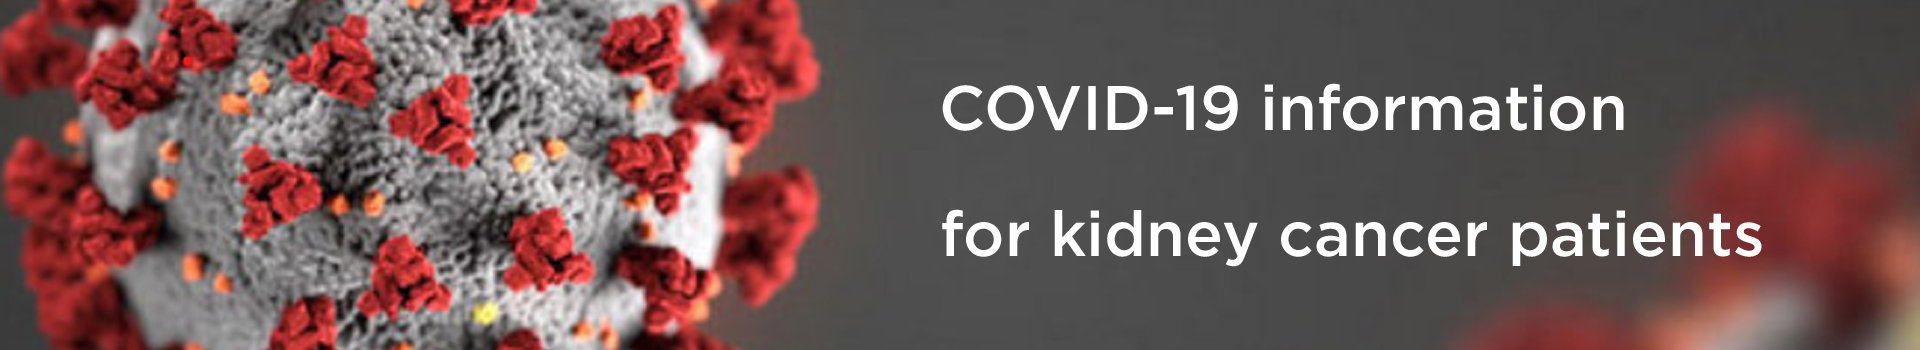 COVID-19 - information for kidney cancer patients